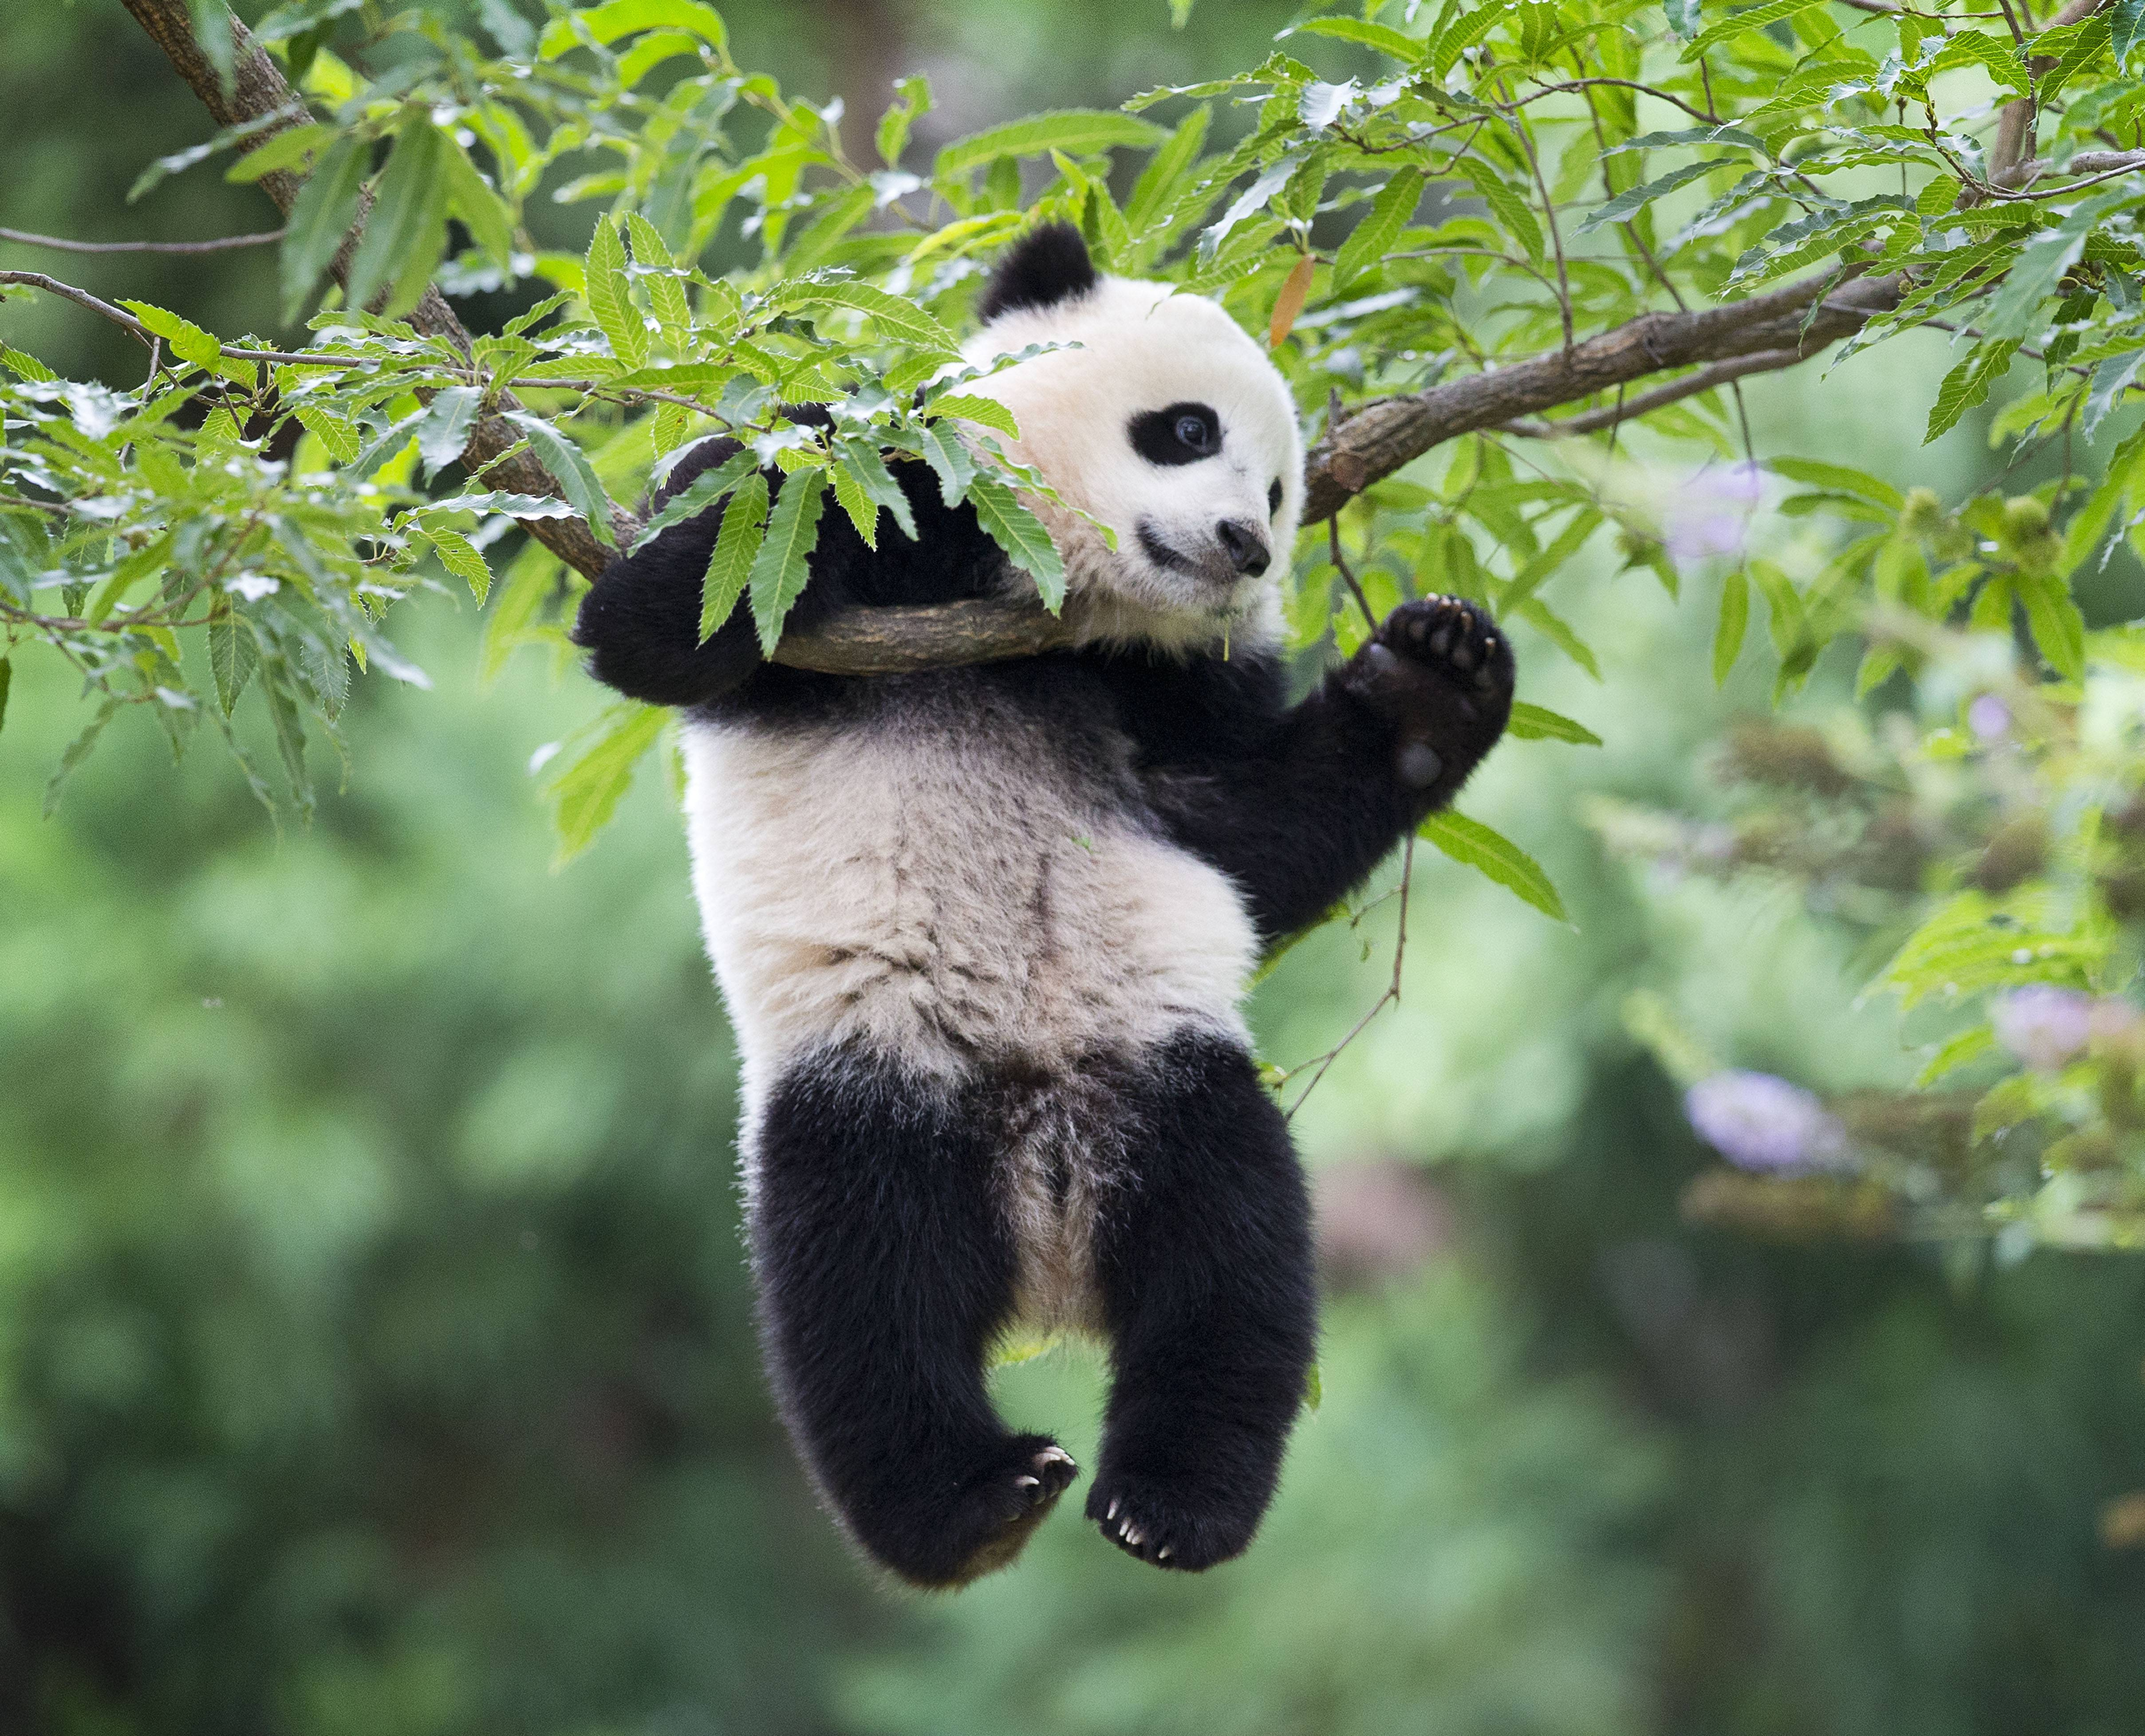 Panda cub Bao Bao hangs from a tree Saturday in her habitat at the National Zoo in Washington on her first birthday.